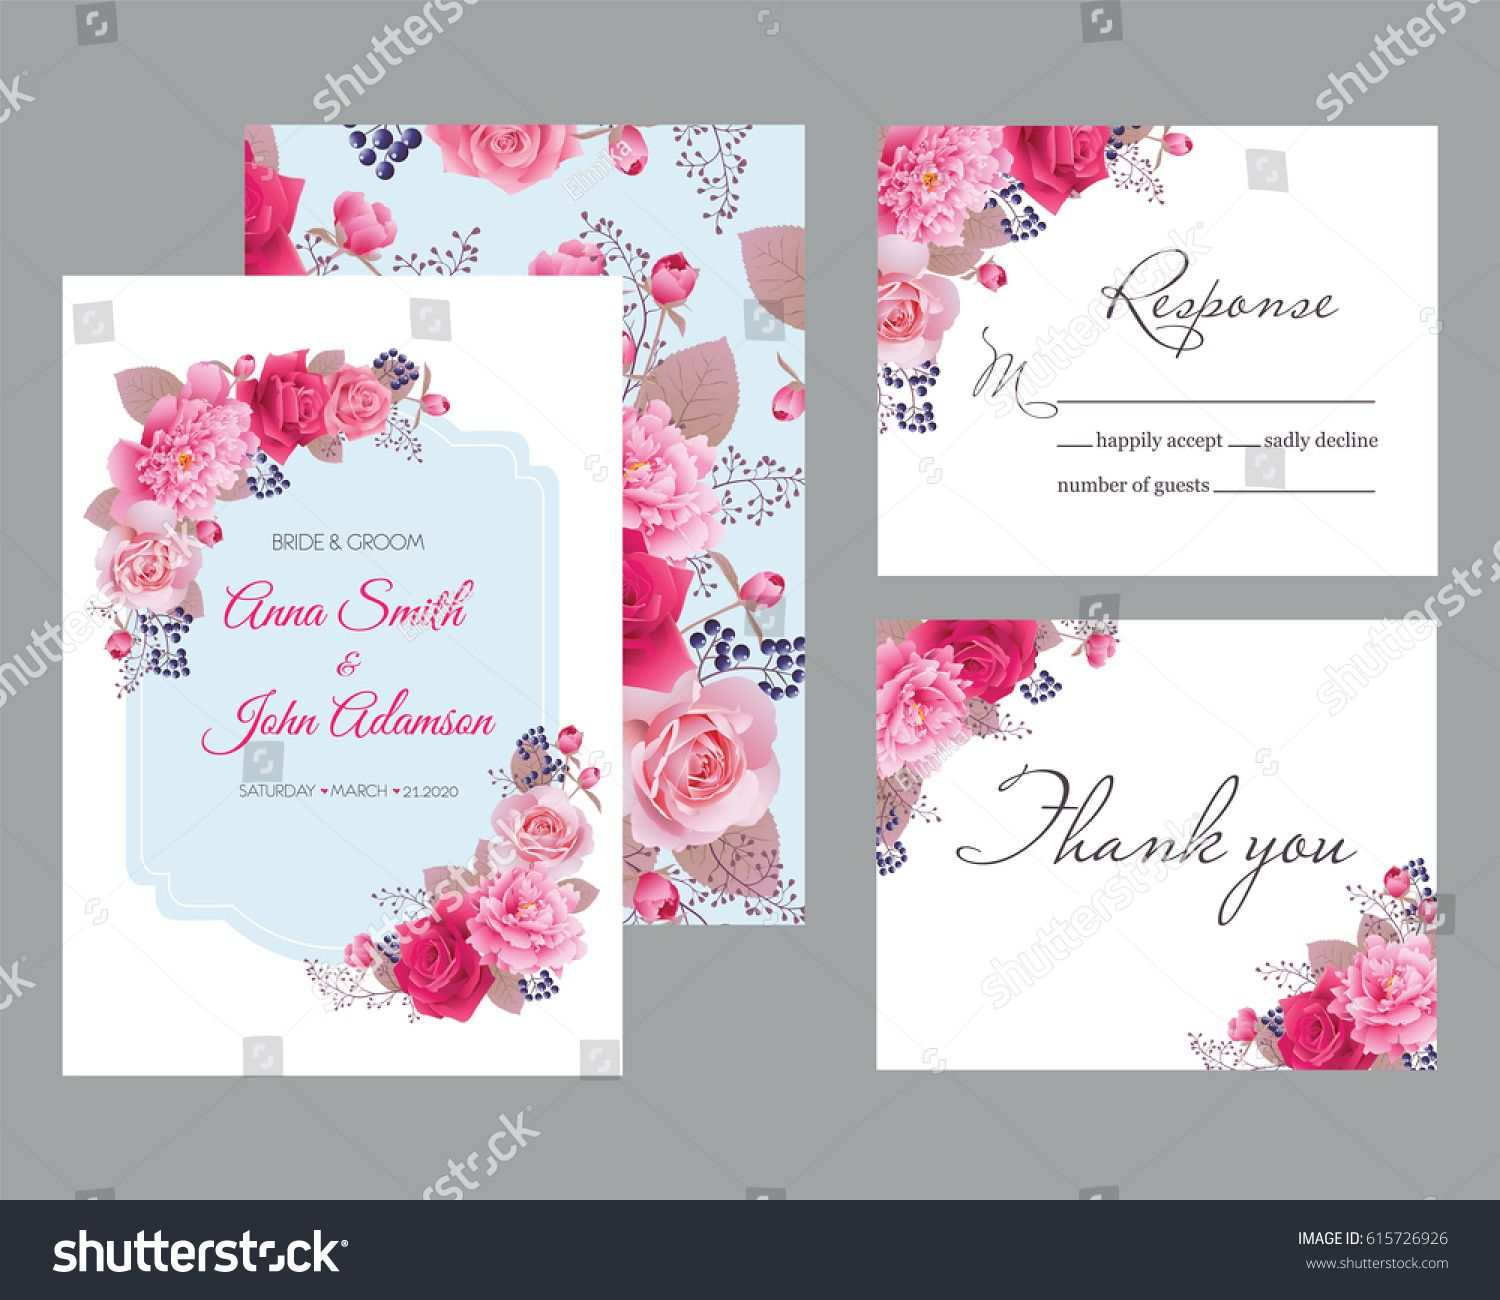 Wedding Acceptance Template Free Wedding Invitations Within Acceptance Card Template Sample Pr Free Wedding Invitations Wedding Invitations Card Template